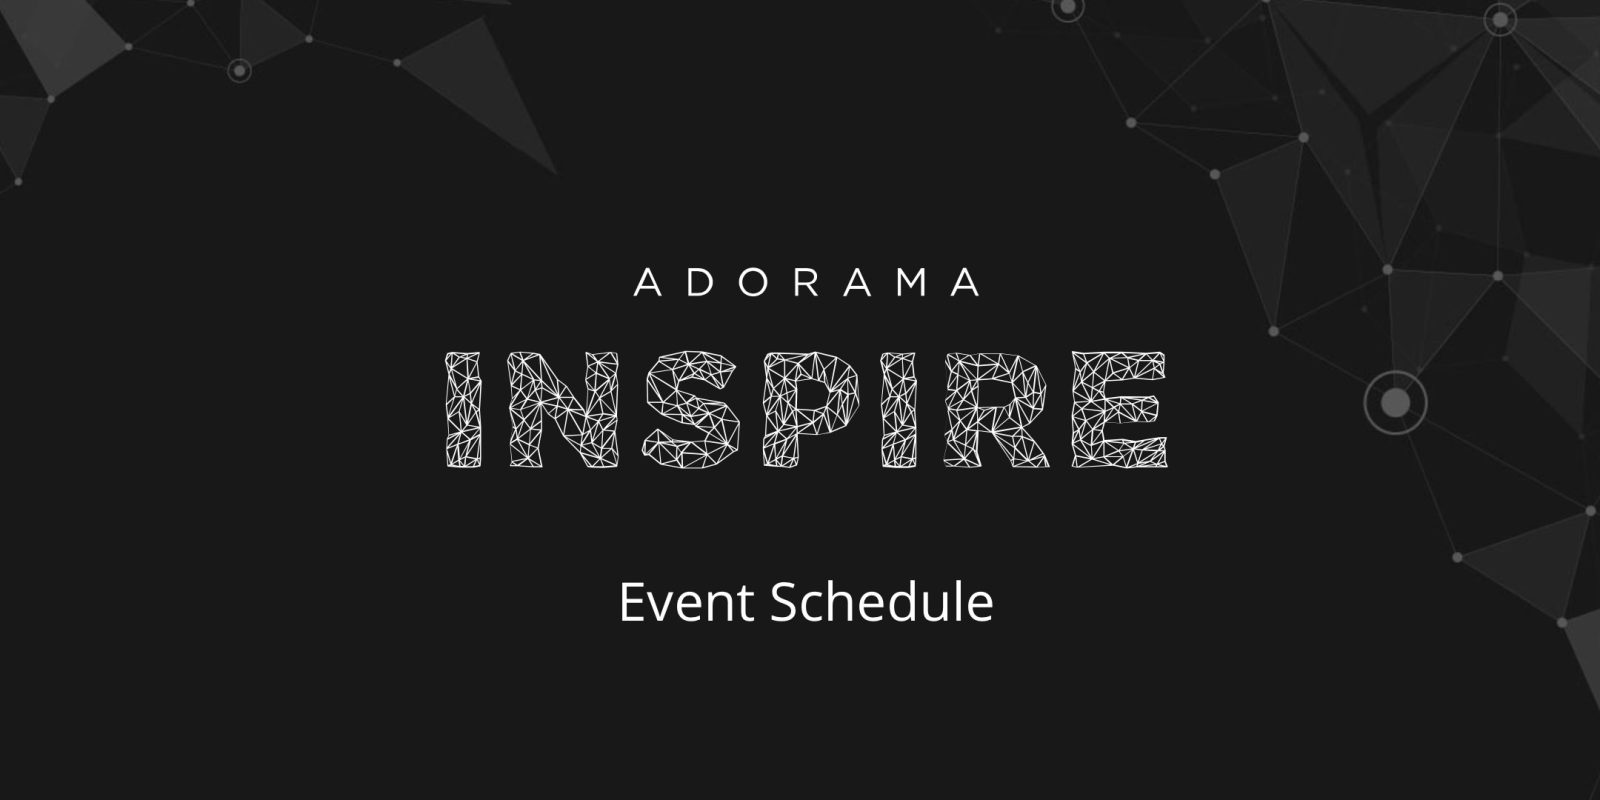 Dronedj spinning news information and reviews on the drone ecosystem adorama is holding inspire event in nyc with special drone workshops fandeluxe Images